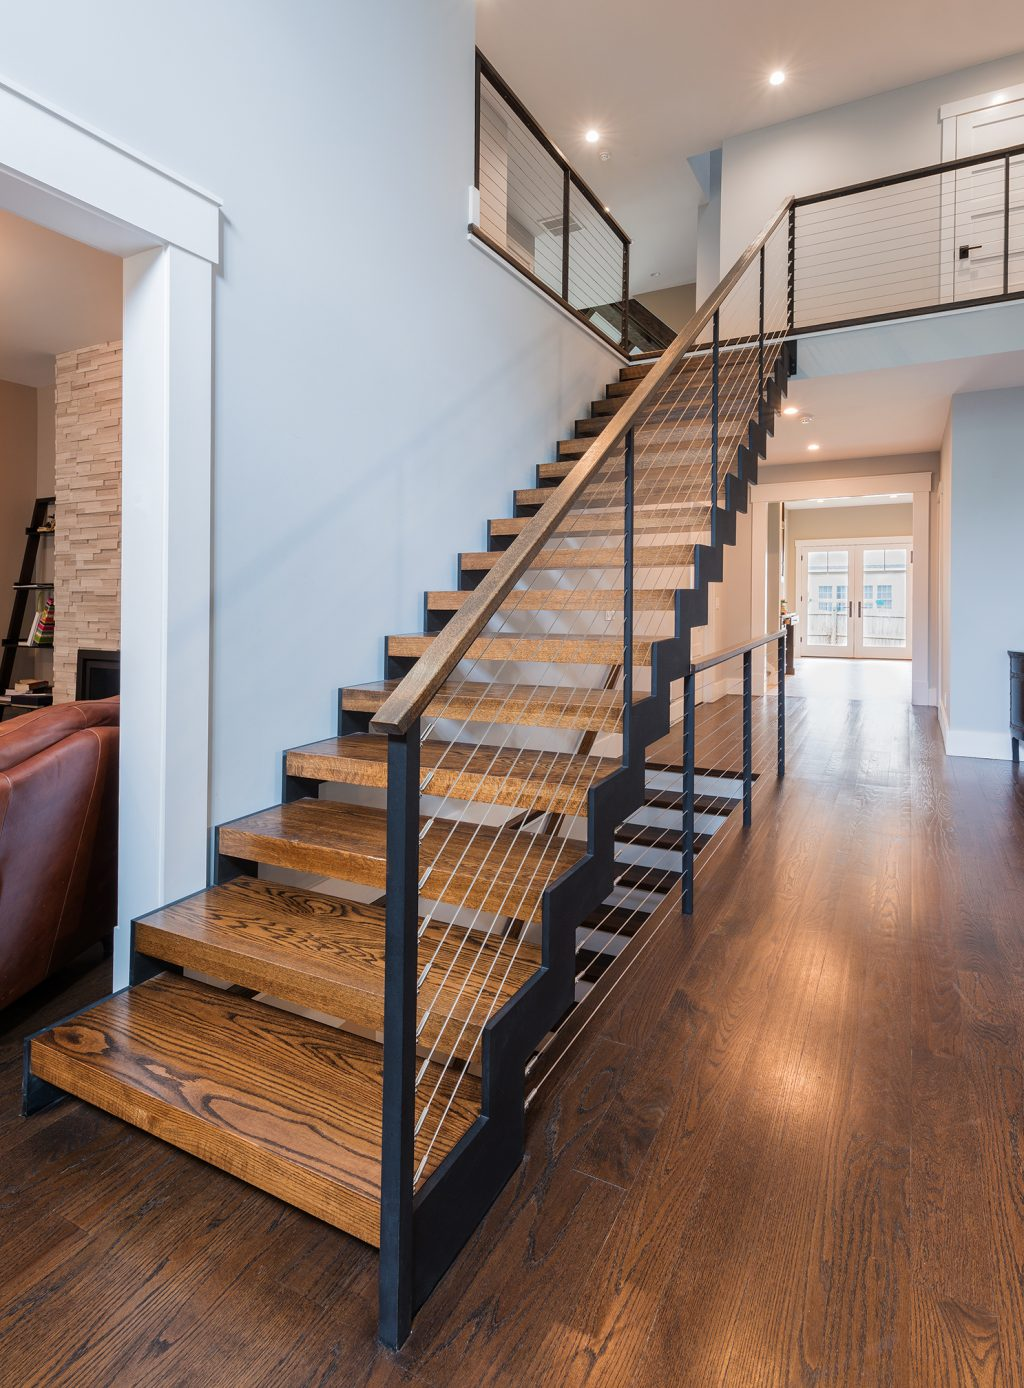 Double stringer zig zag staircase with oak treads